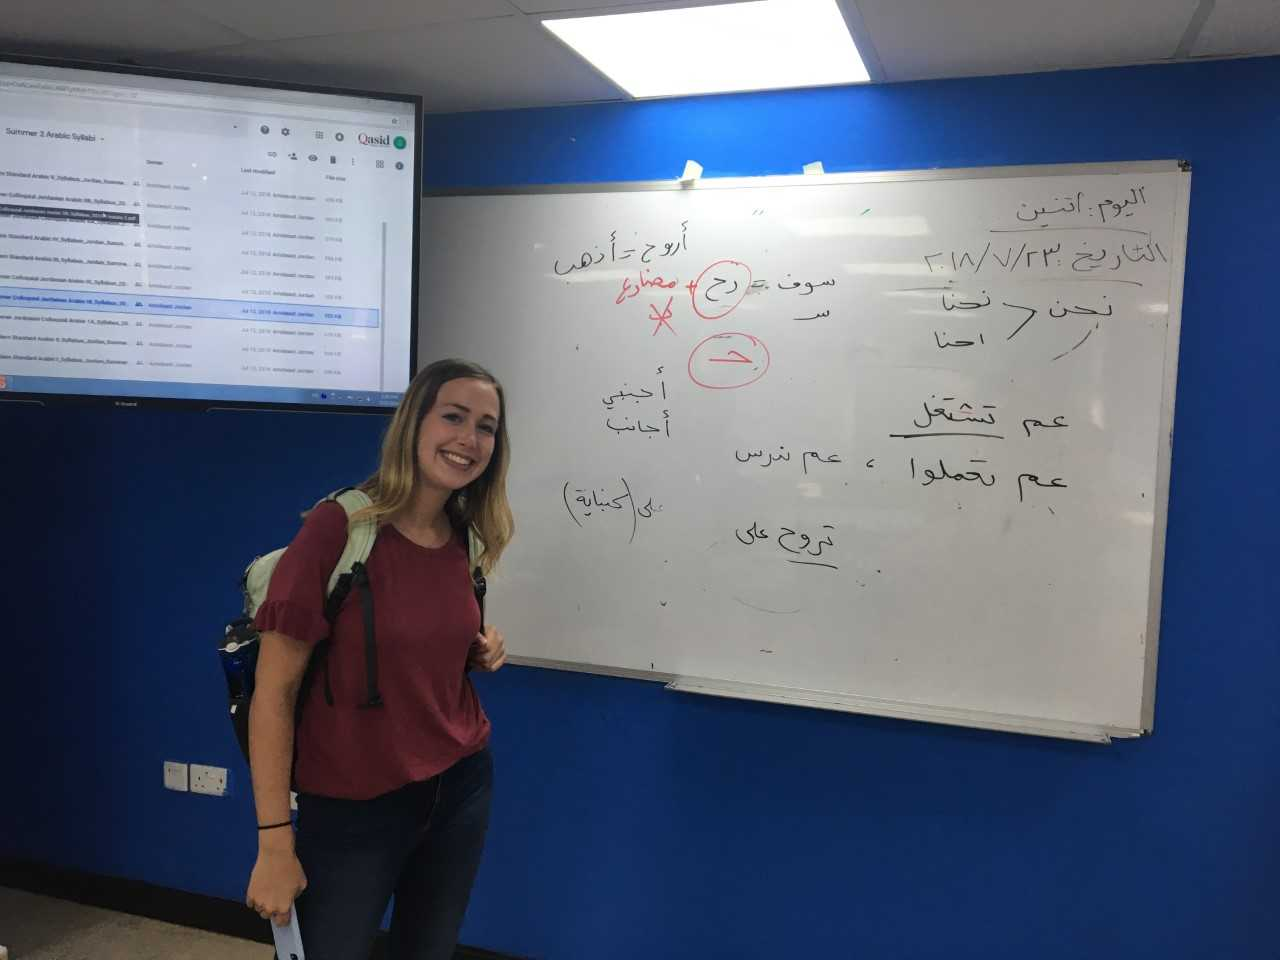 My classmate, Hannah, poses by the Ammiya board after class. Photo credit: Russ, 2018